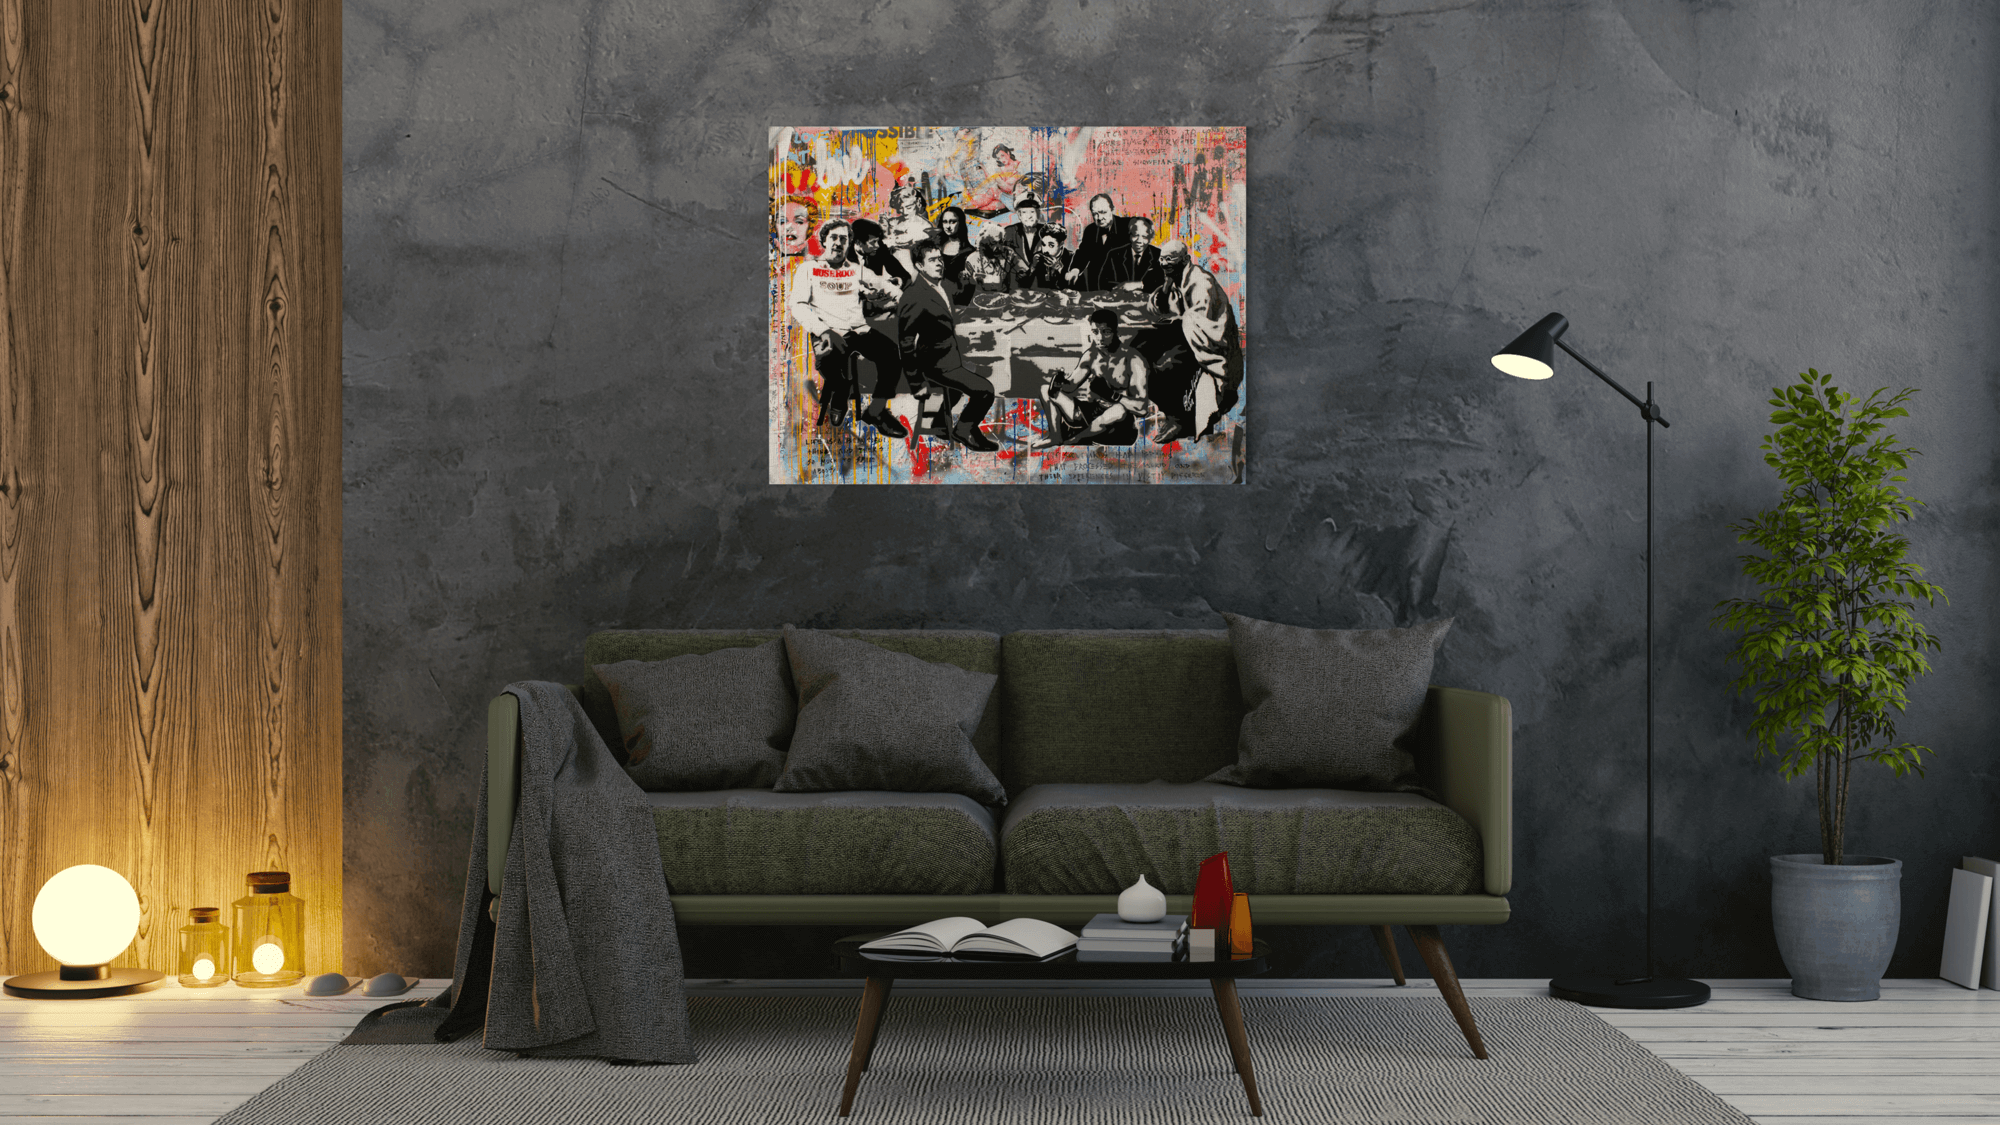 The Last Supper - canvas-to-the-people - Exclusive Canvas Art Shipped Globally